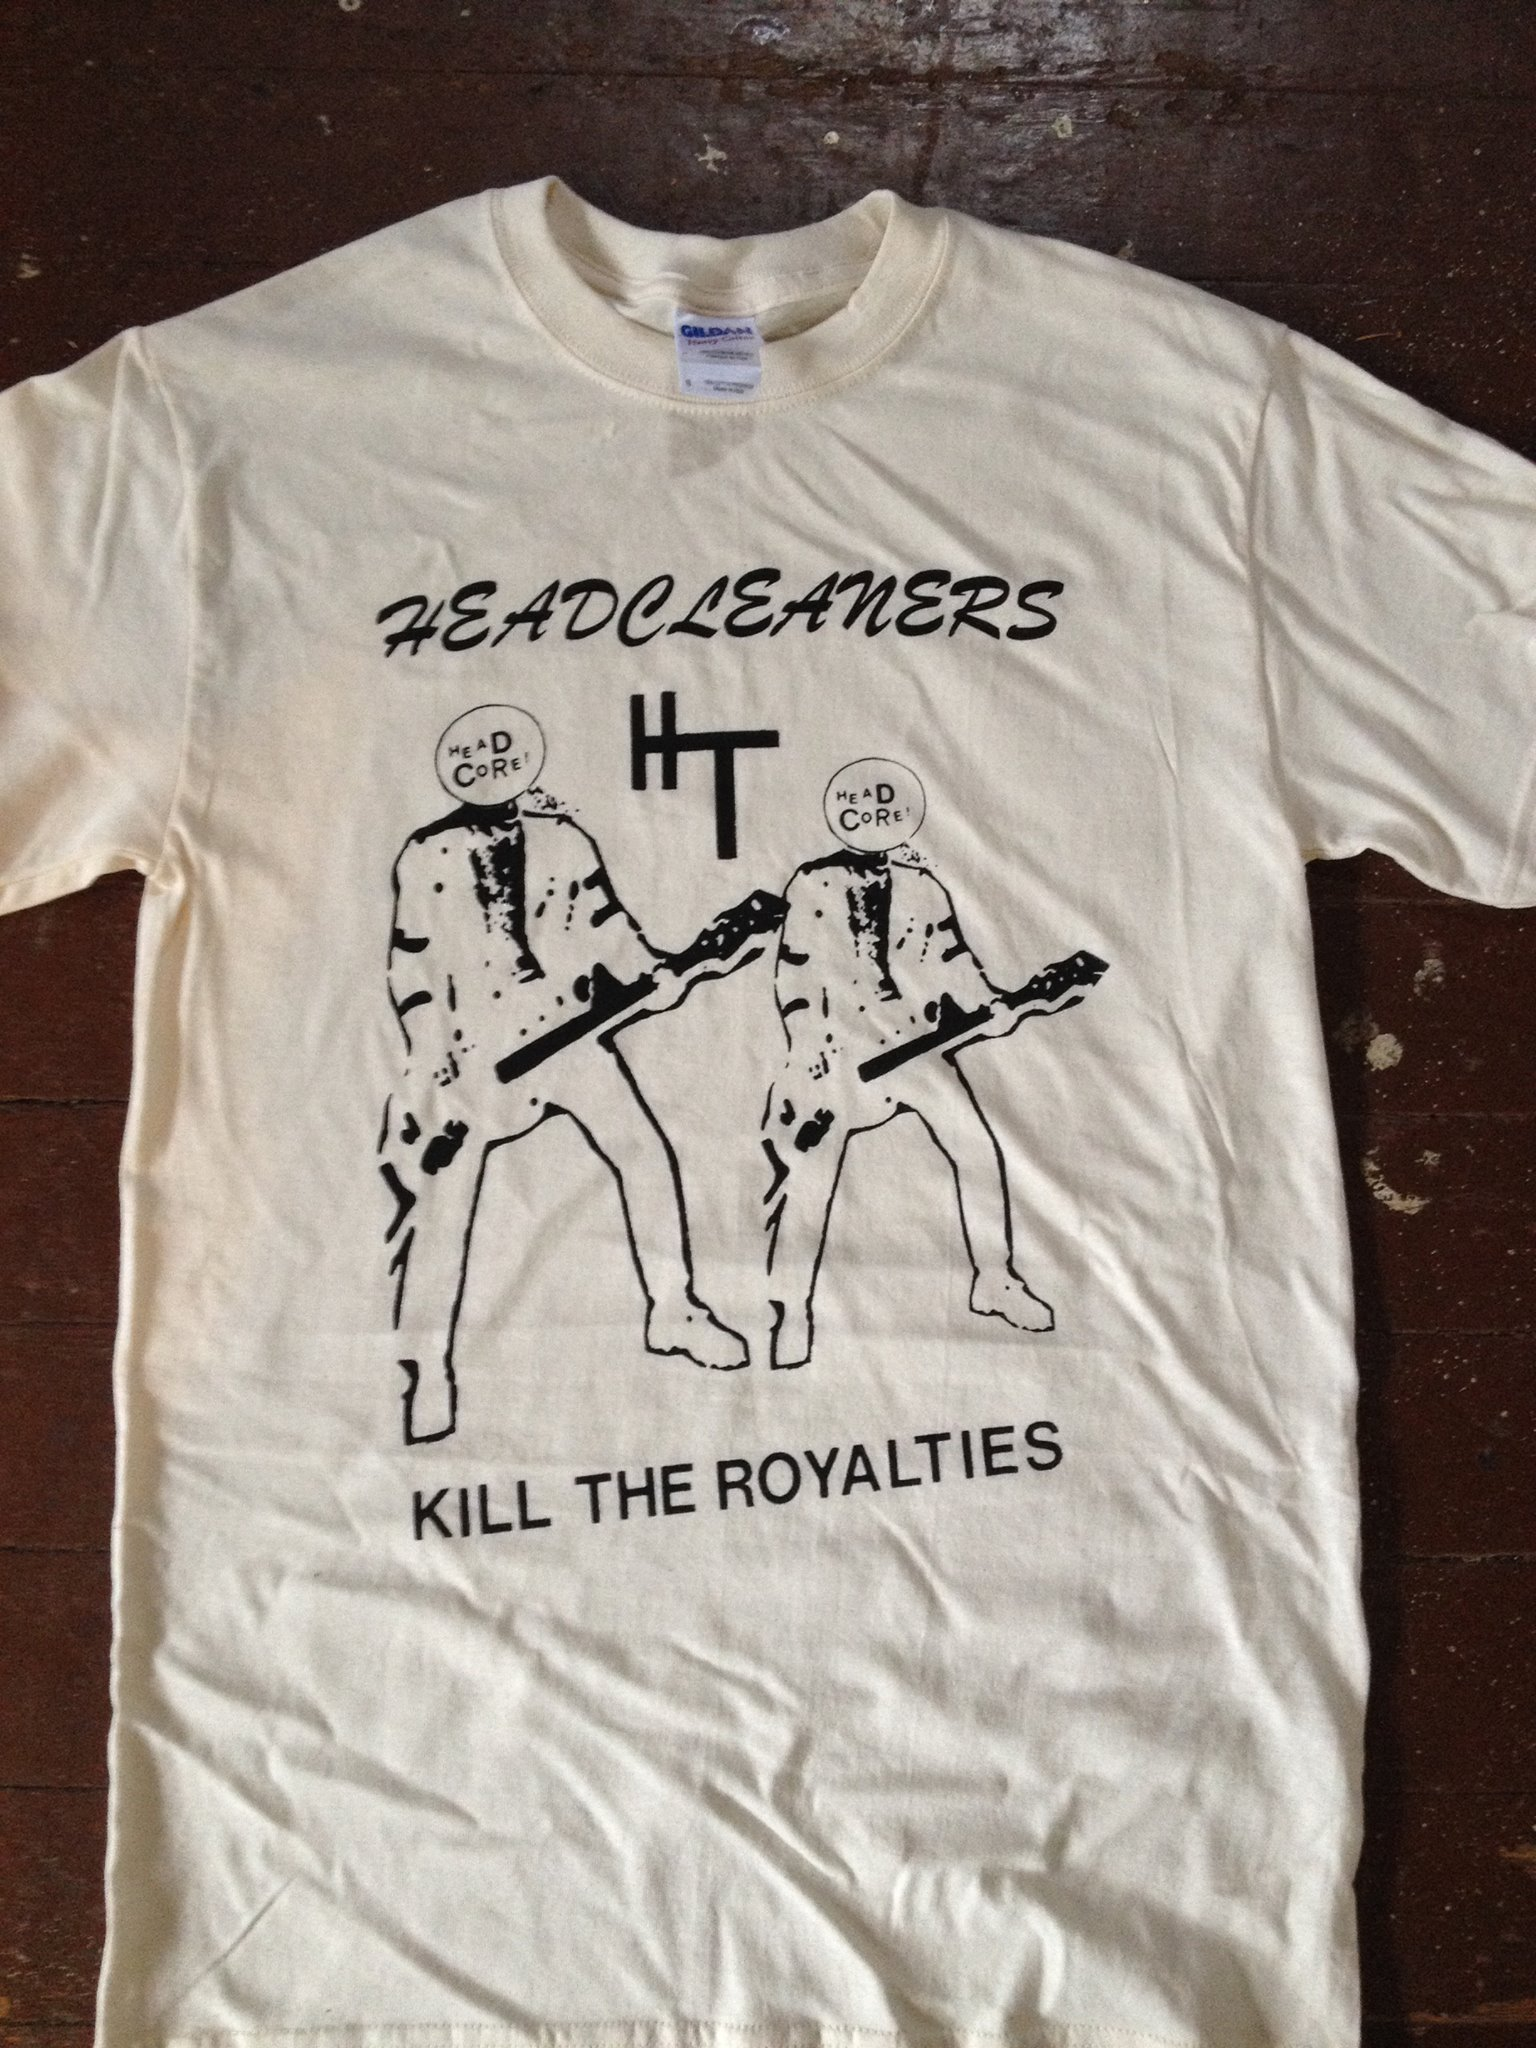 "Headcleaners ""Tribute"" shirt designed & printed in house"